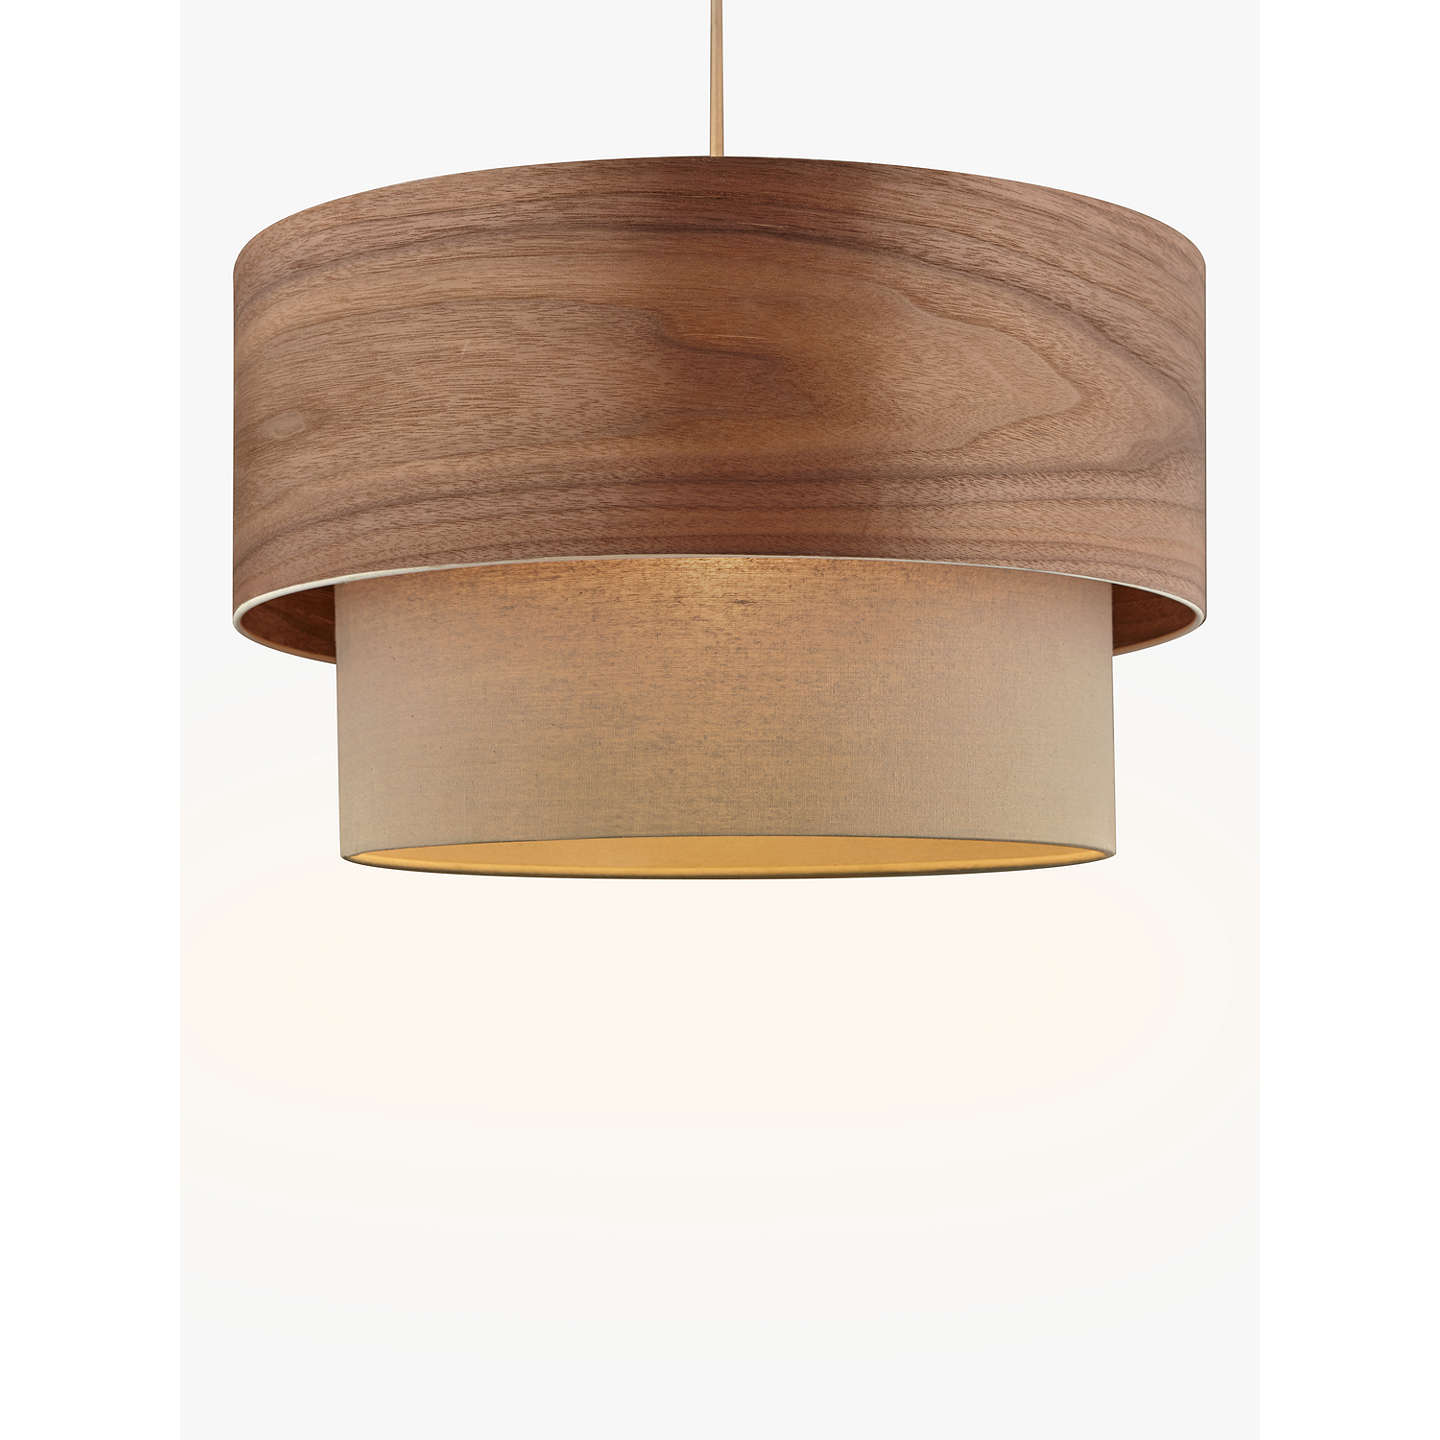 Design project by john lewis no028 ceiling light walnut veneer buydesign project by john lewis no028 ceiling light walnut veneergrey online aloadofball Images